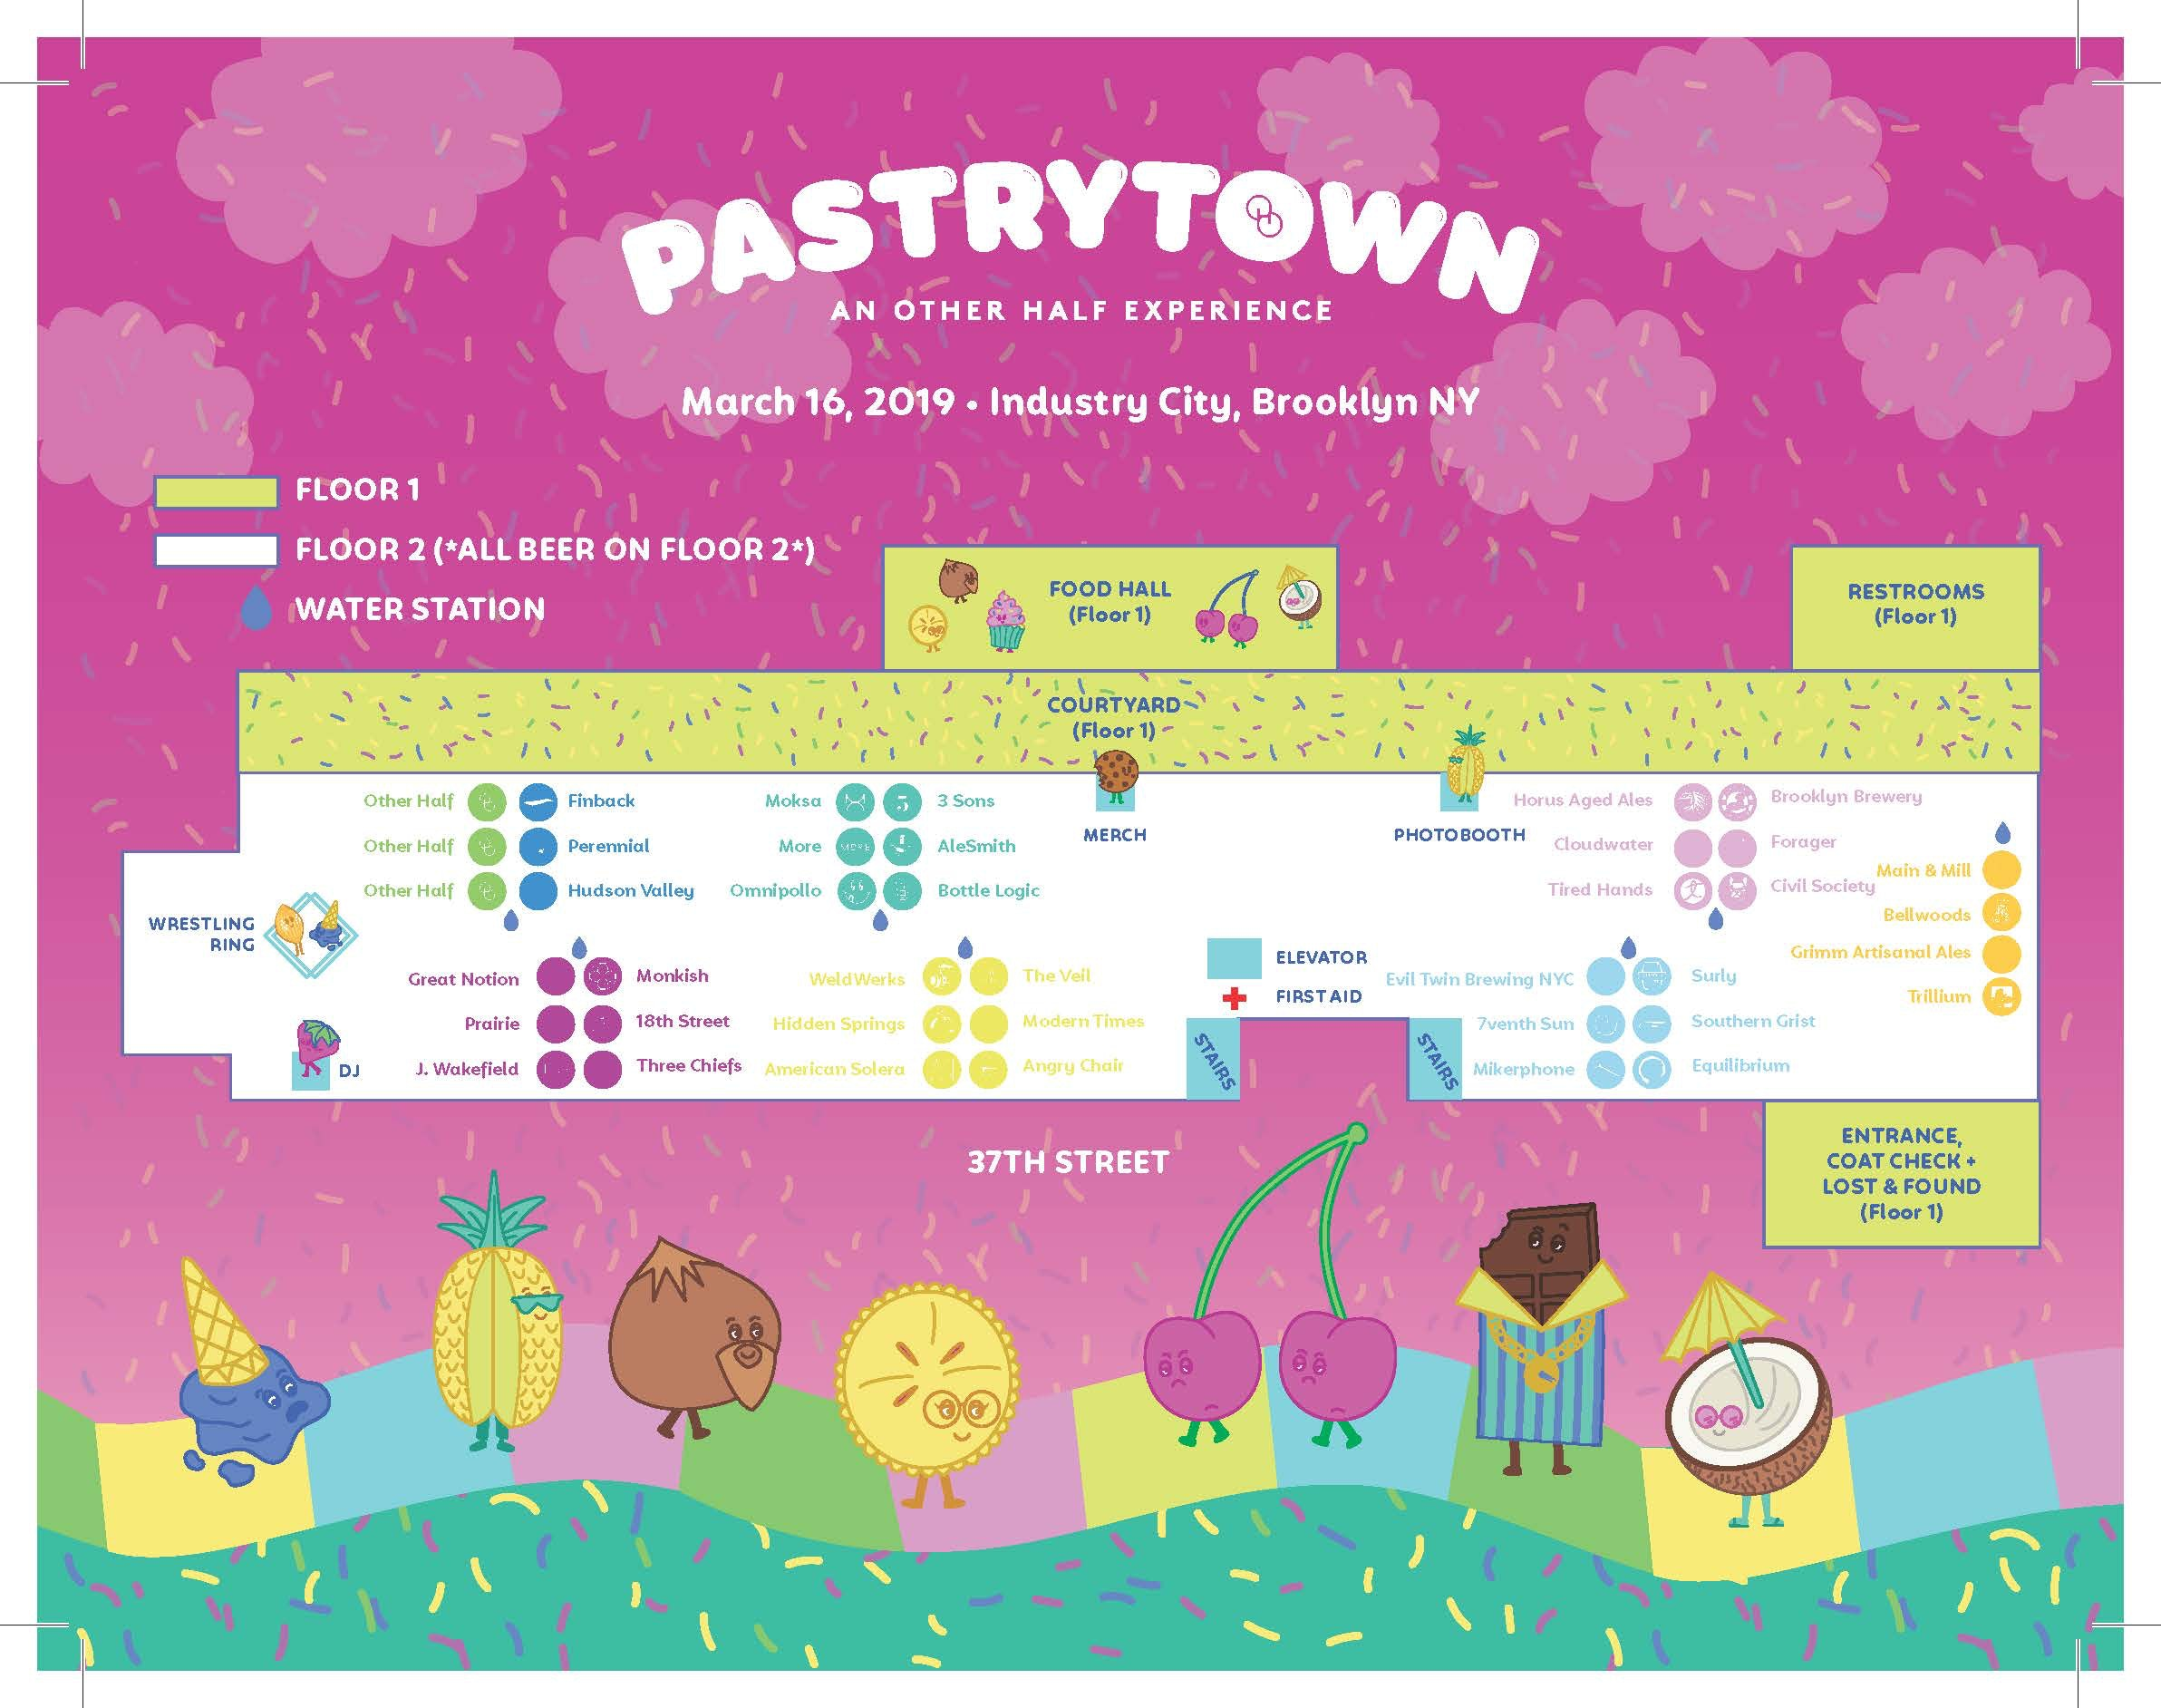 PASTRYTOWNMAP_V4_Final_Page_2